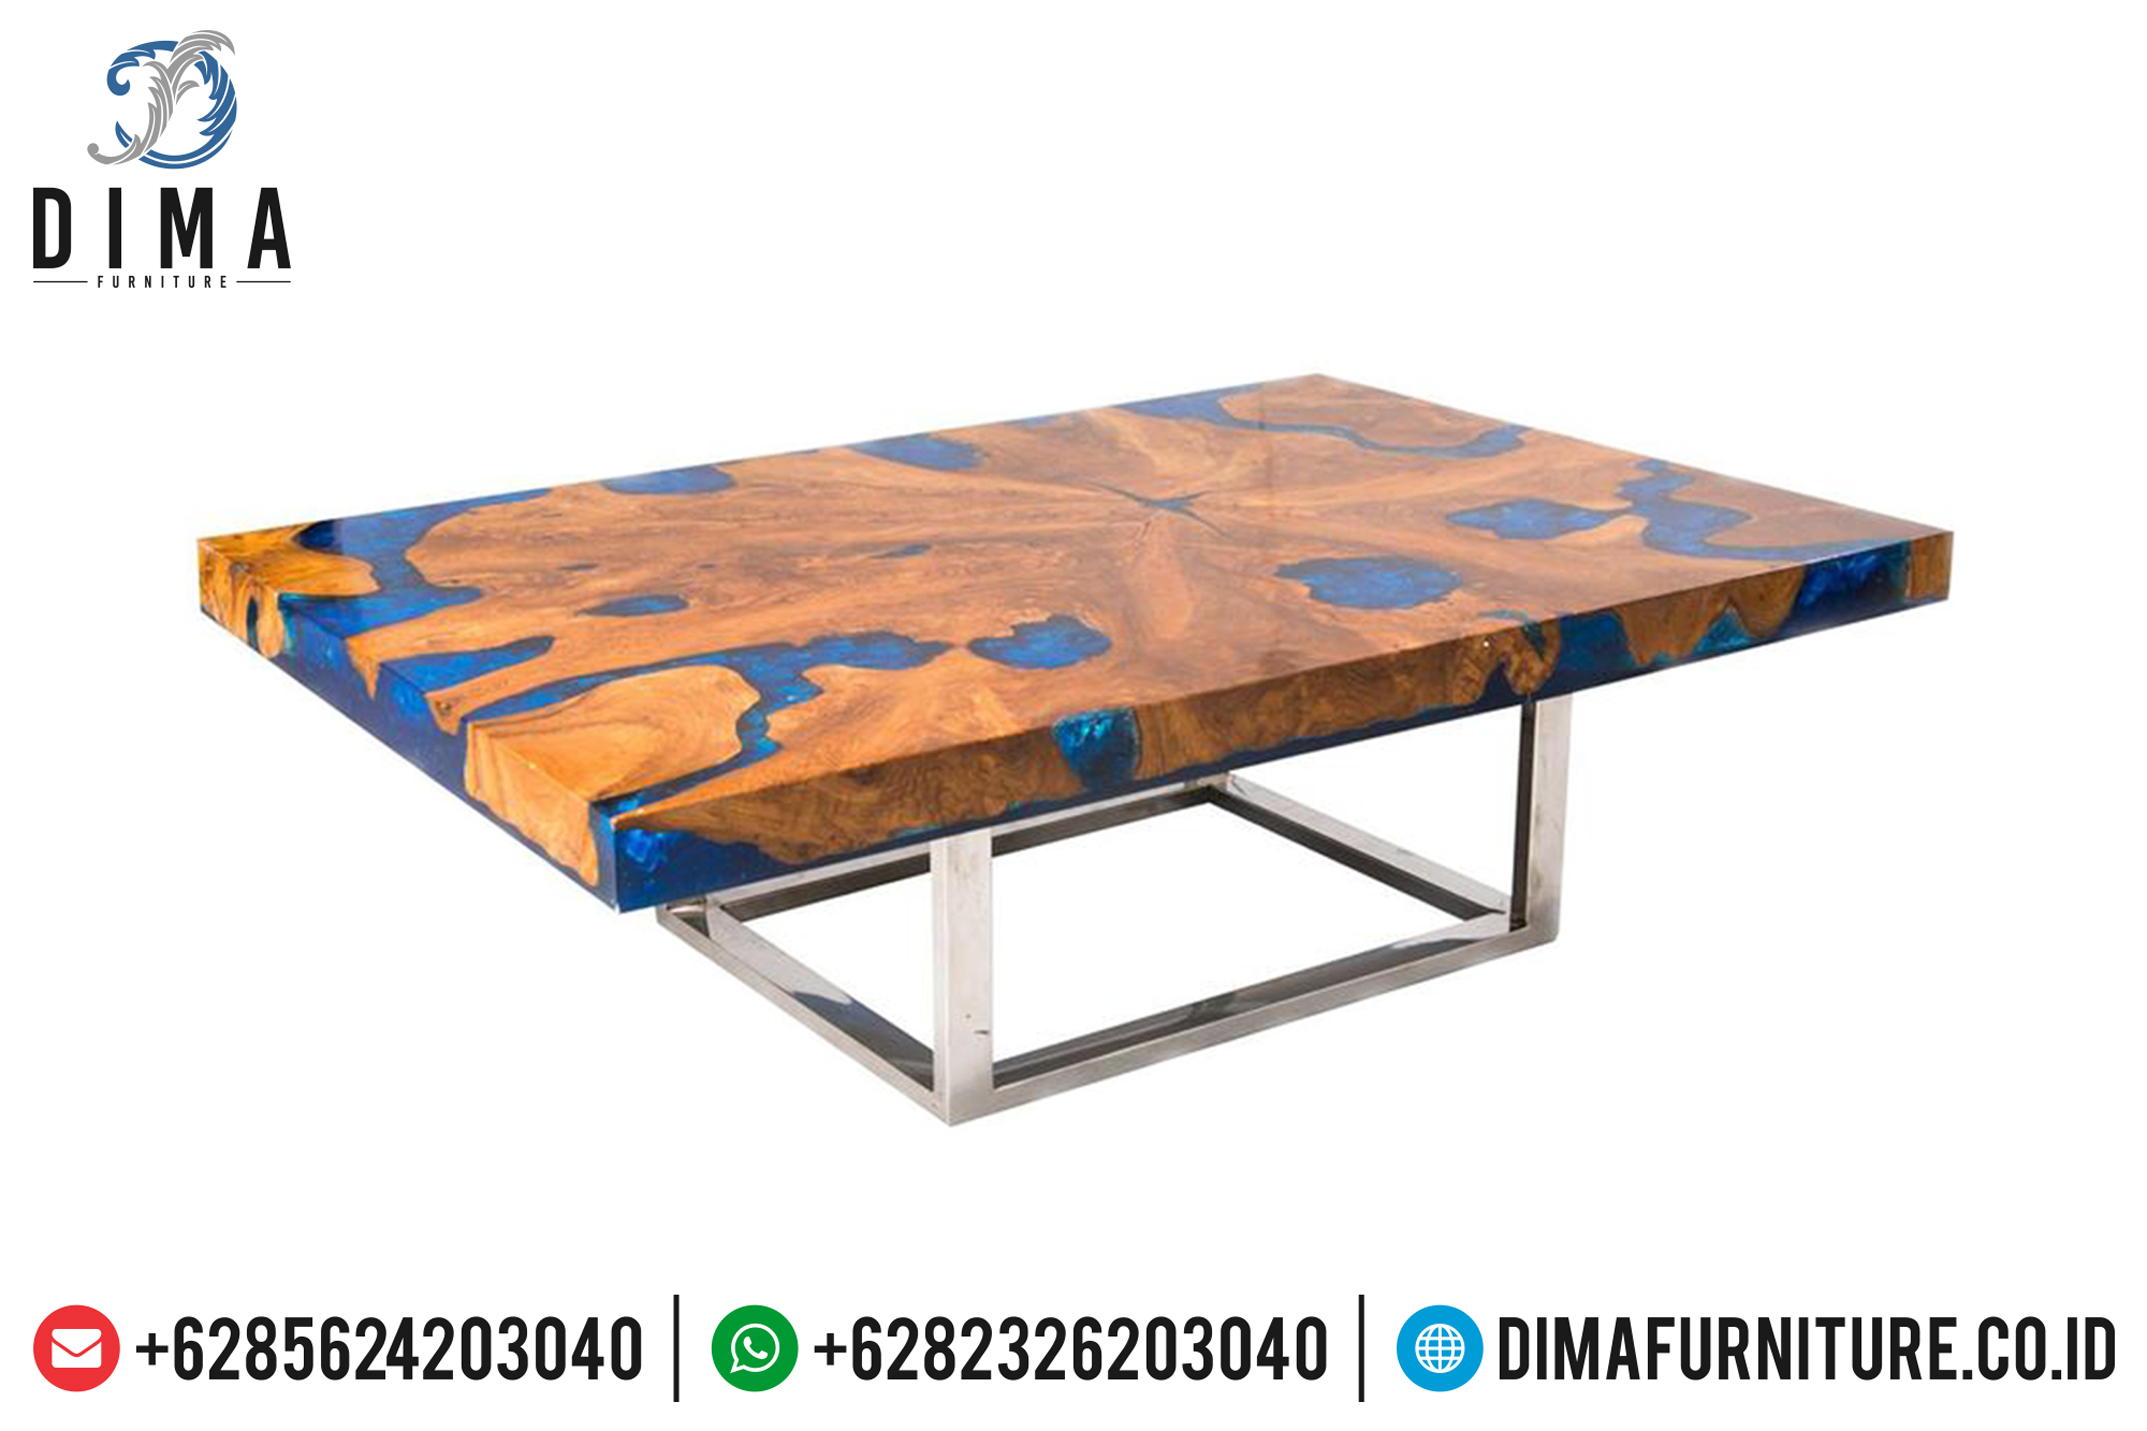 Resin Furniture Wholesale, Mebel Jepara, Meja Resin Minimalis Terbaru DF-0705